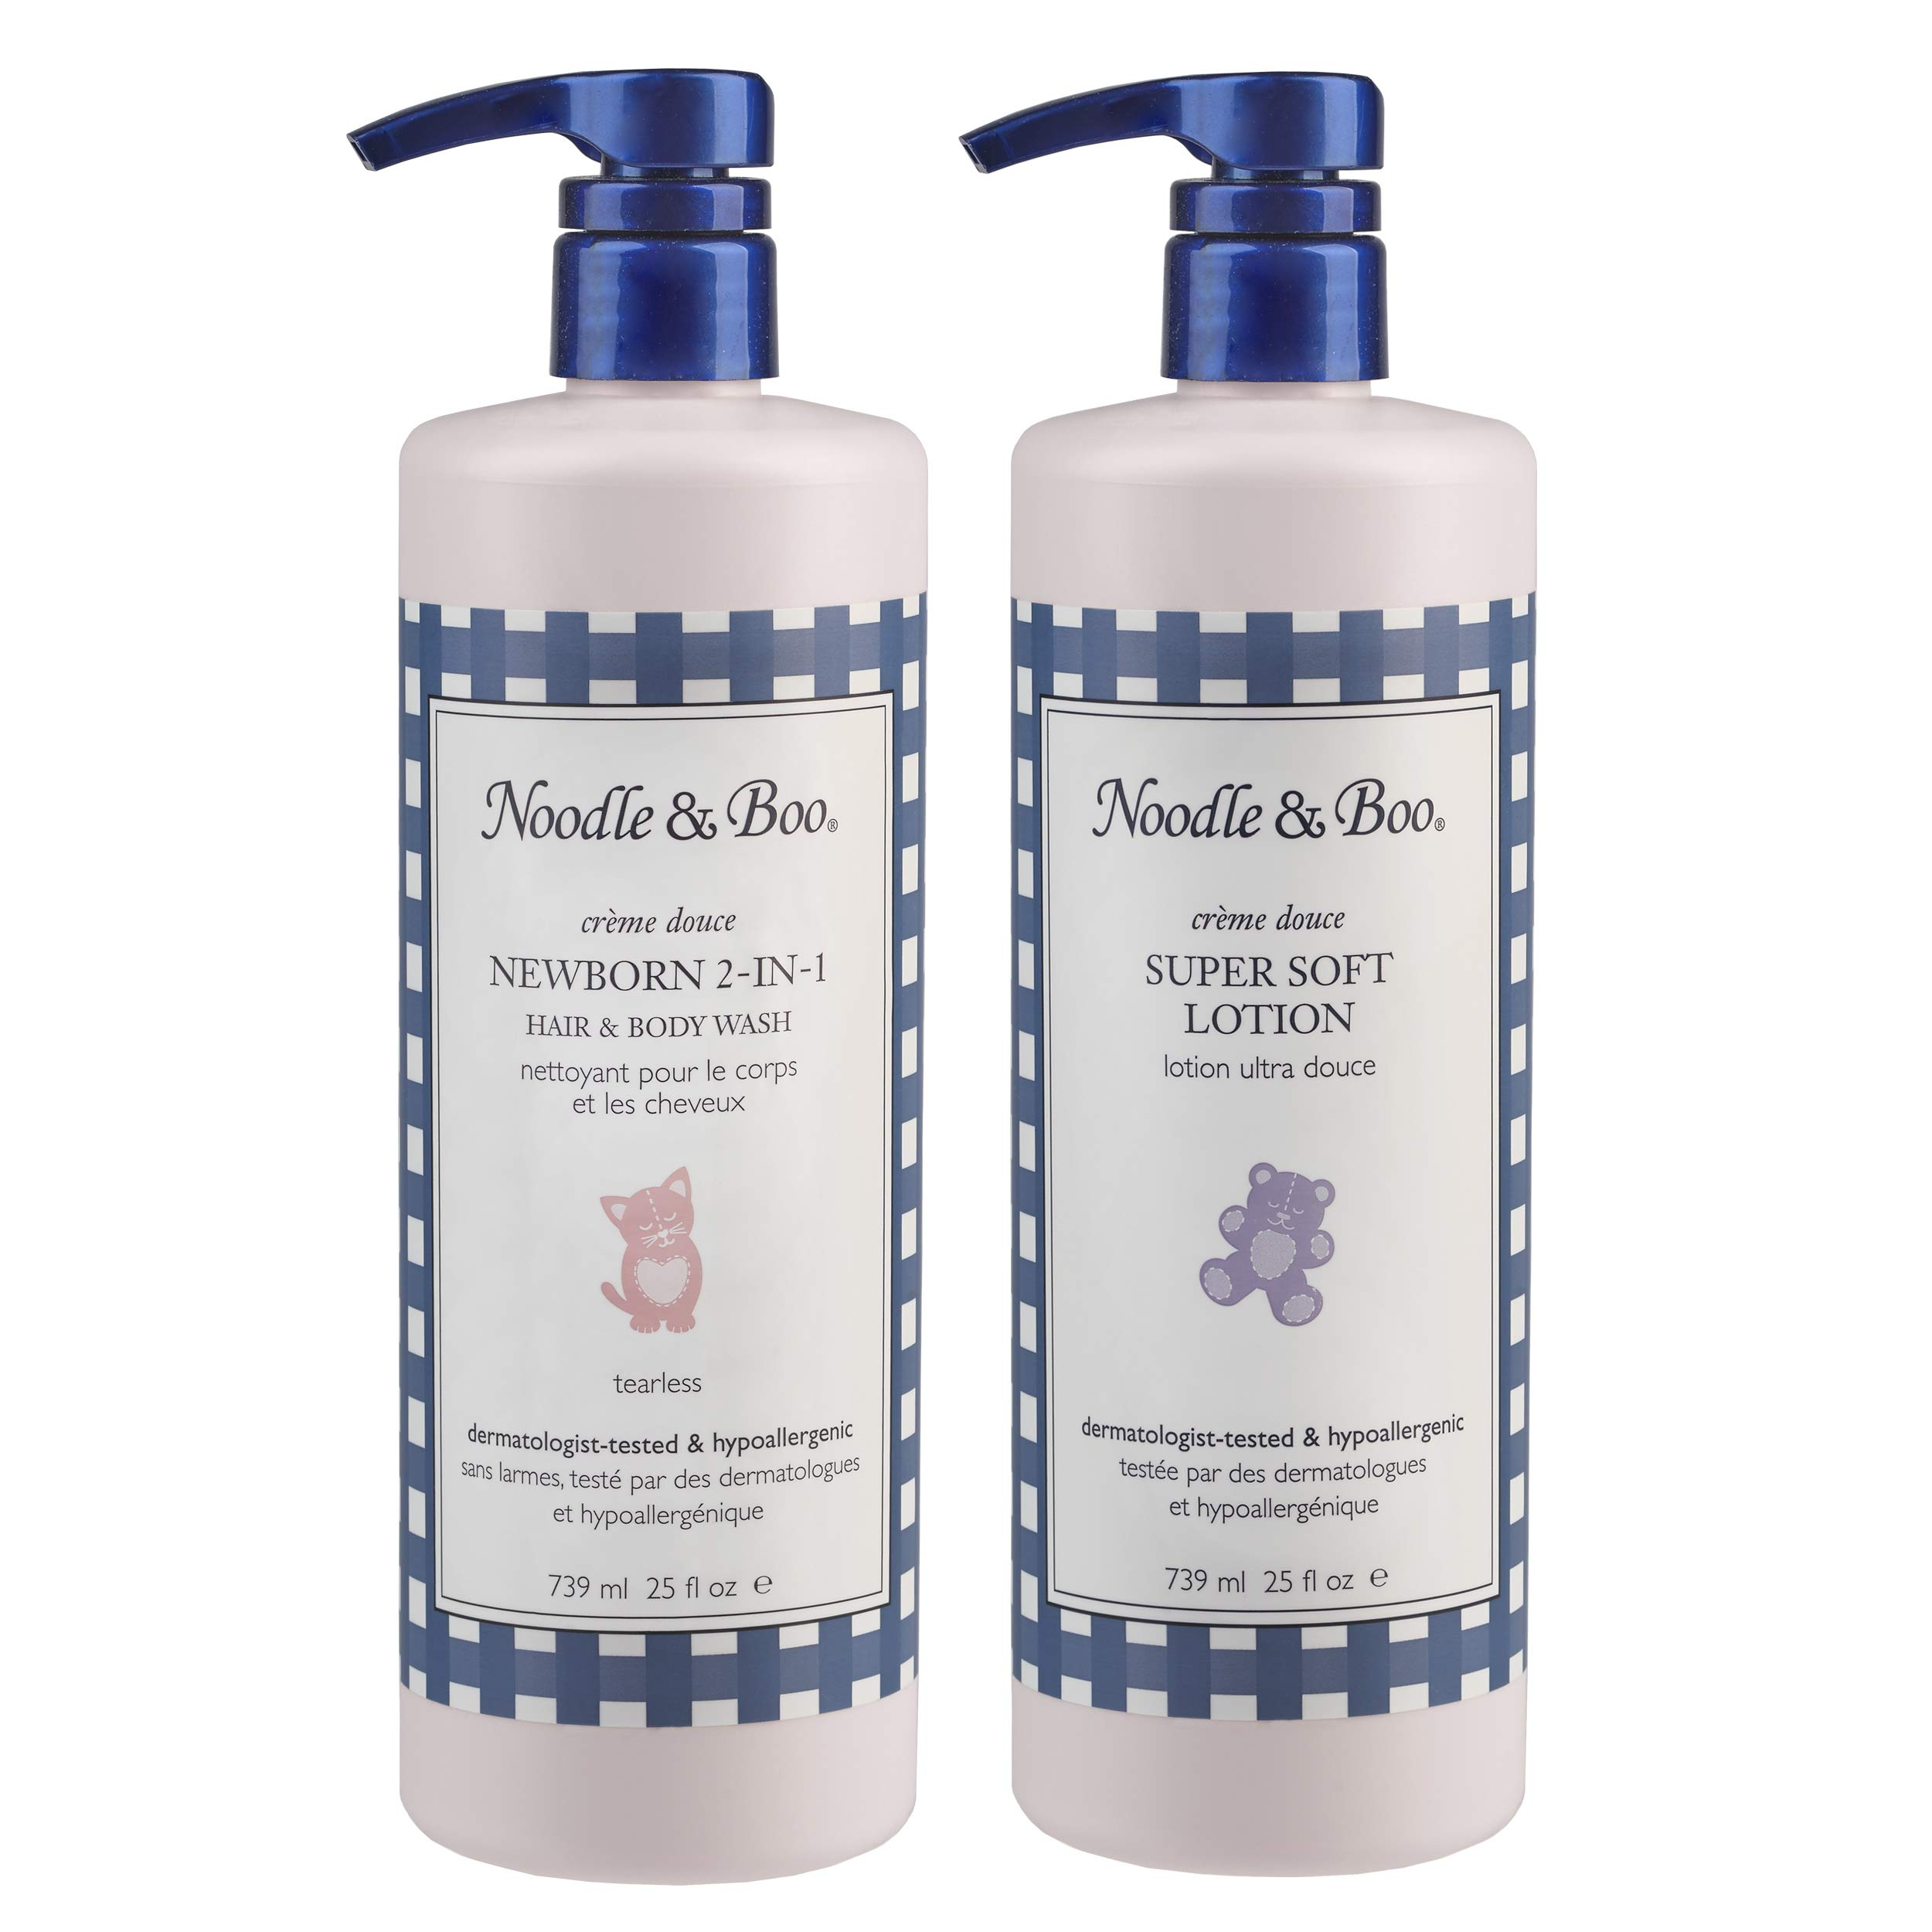 Noodle & Boo 2-in-1 Newborn Hair & Body Wash and Super Soft Lotion Bundle by Noodle & Boo